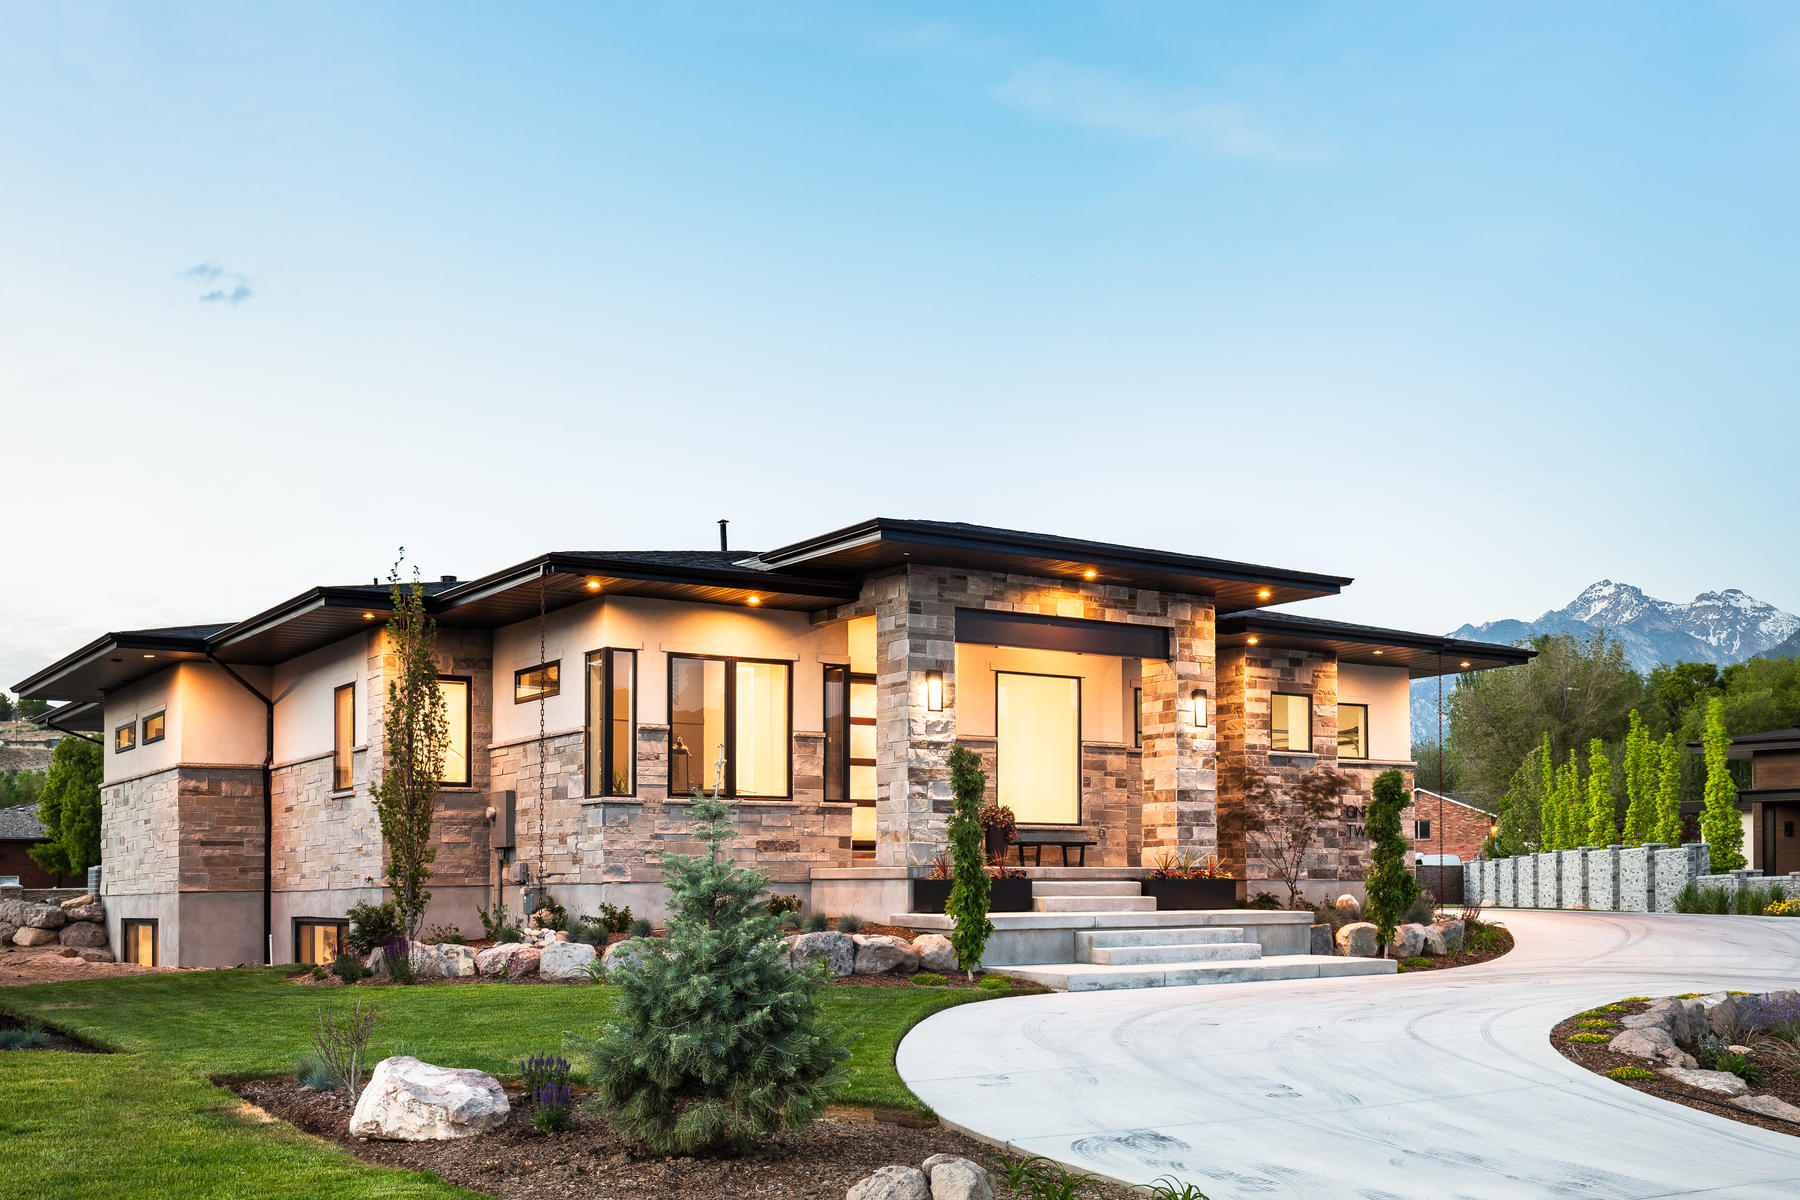 Single Family Homes for Sale at Luxurious Modern Masterpiece 1321 Crossgrove Ct Draper, Utah 84020 United States